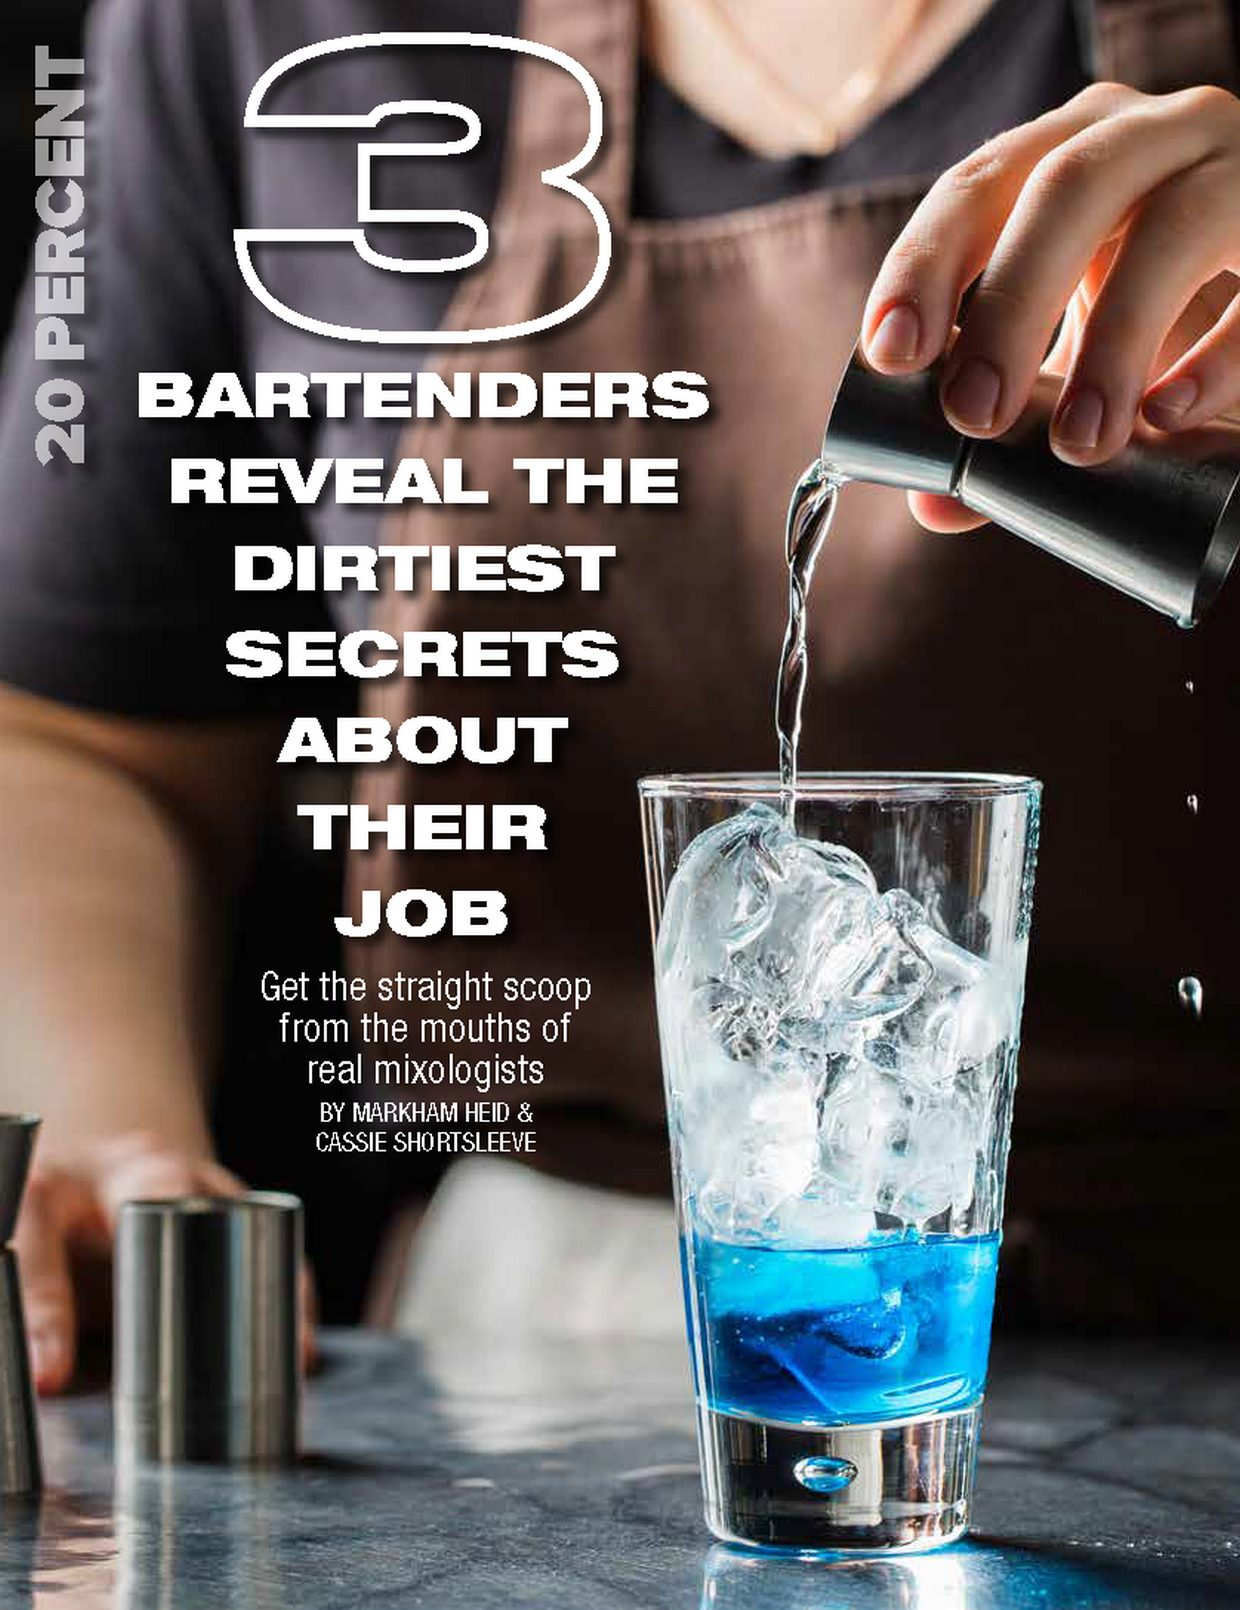 3 BARTENDERS REVEAL THE DIRTIEST SECRETS ABOUT THEIR JOB